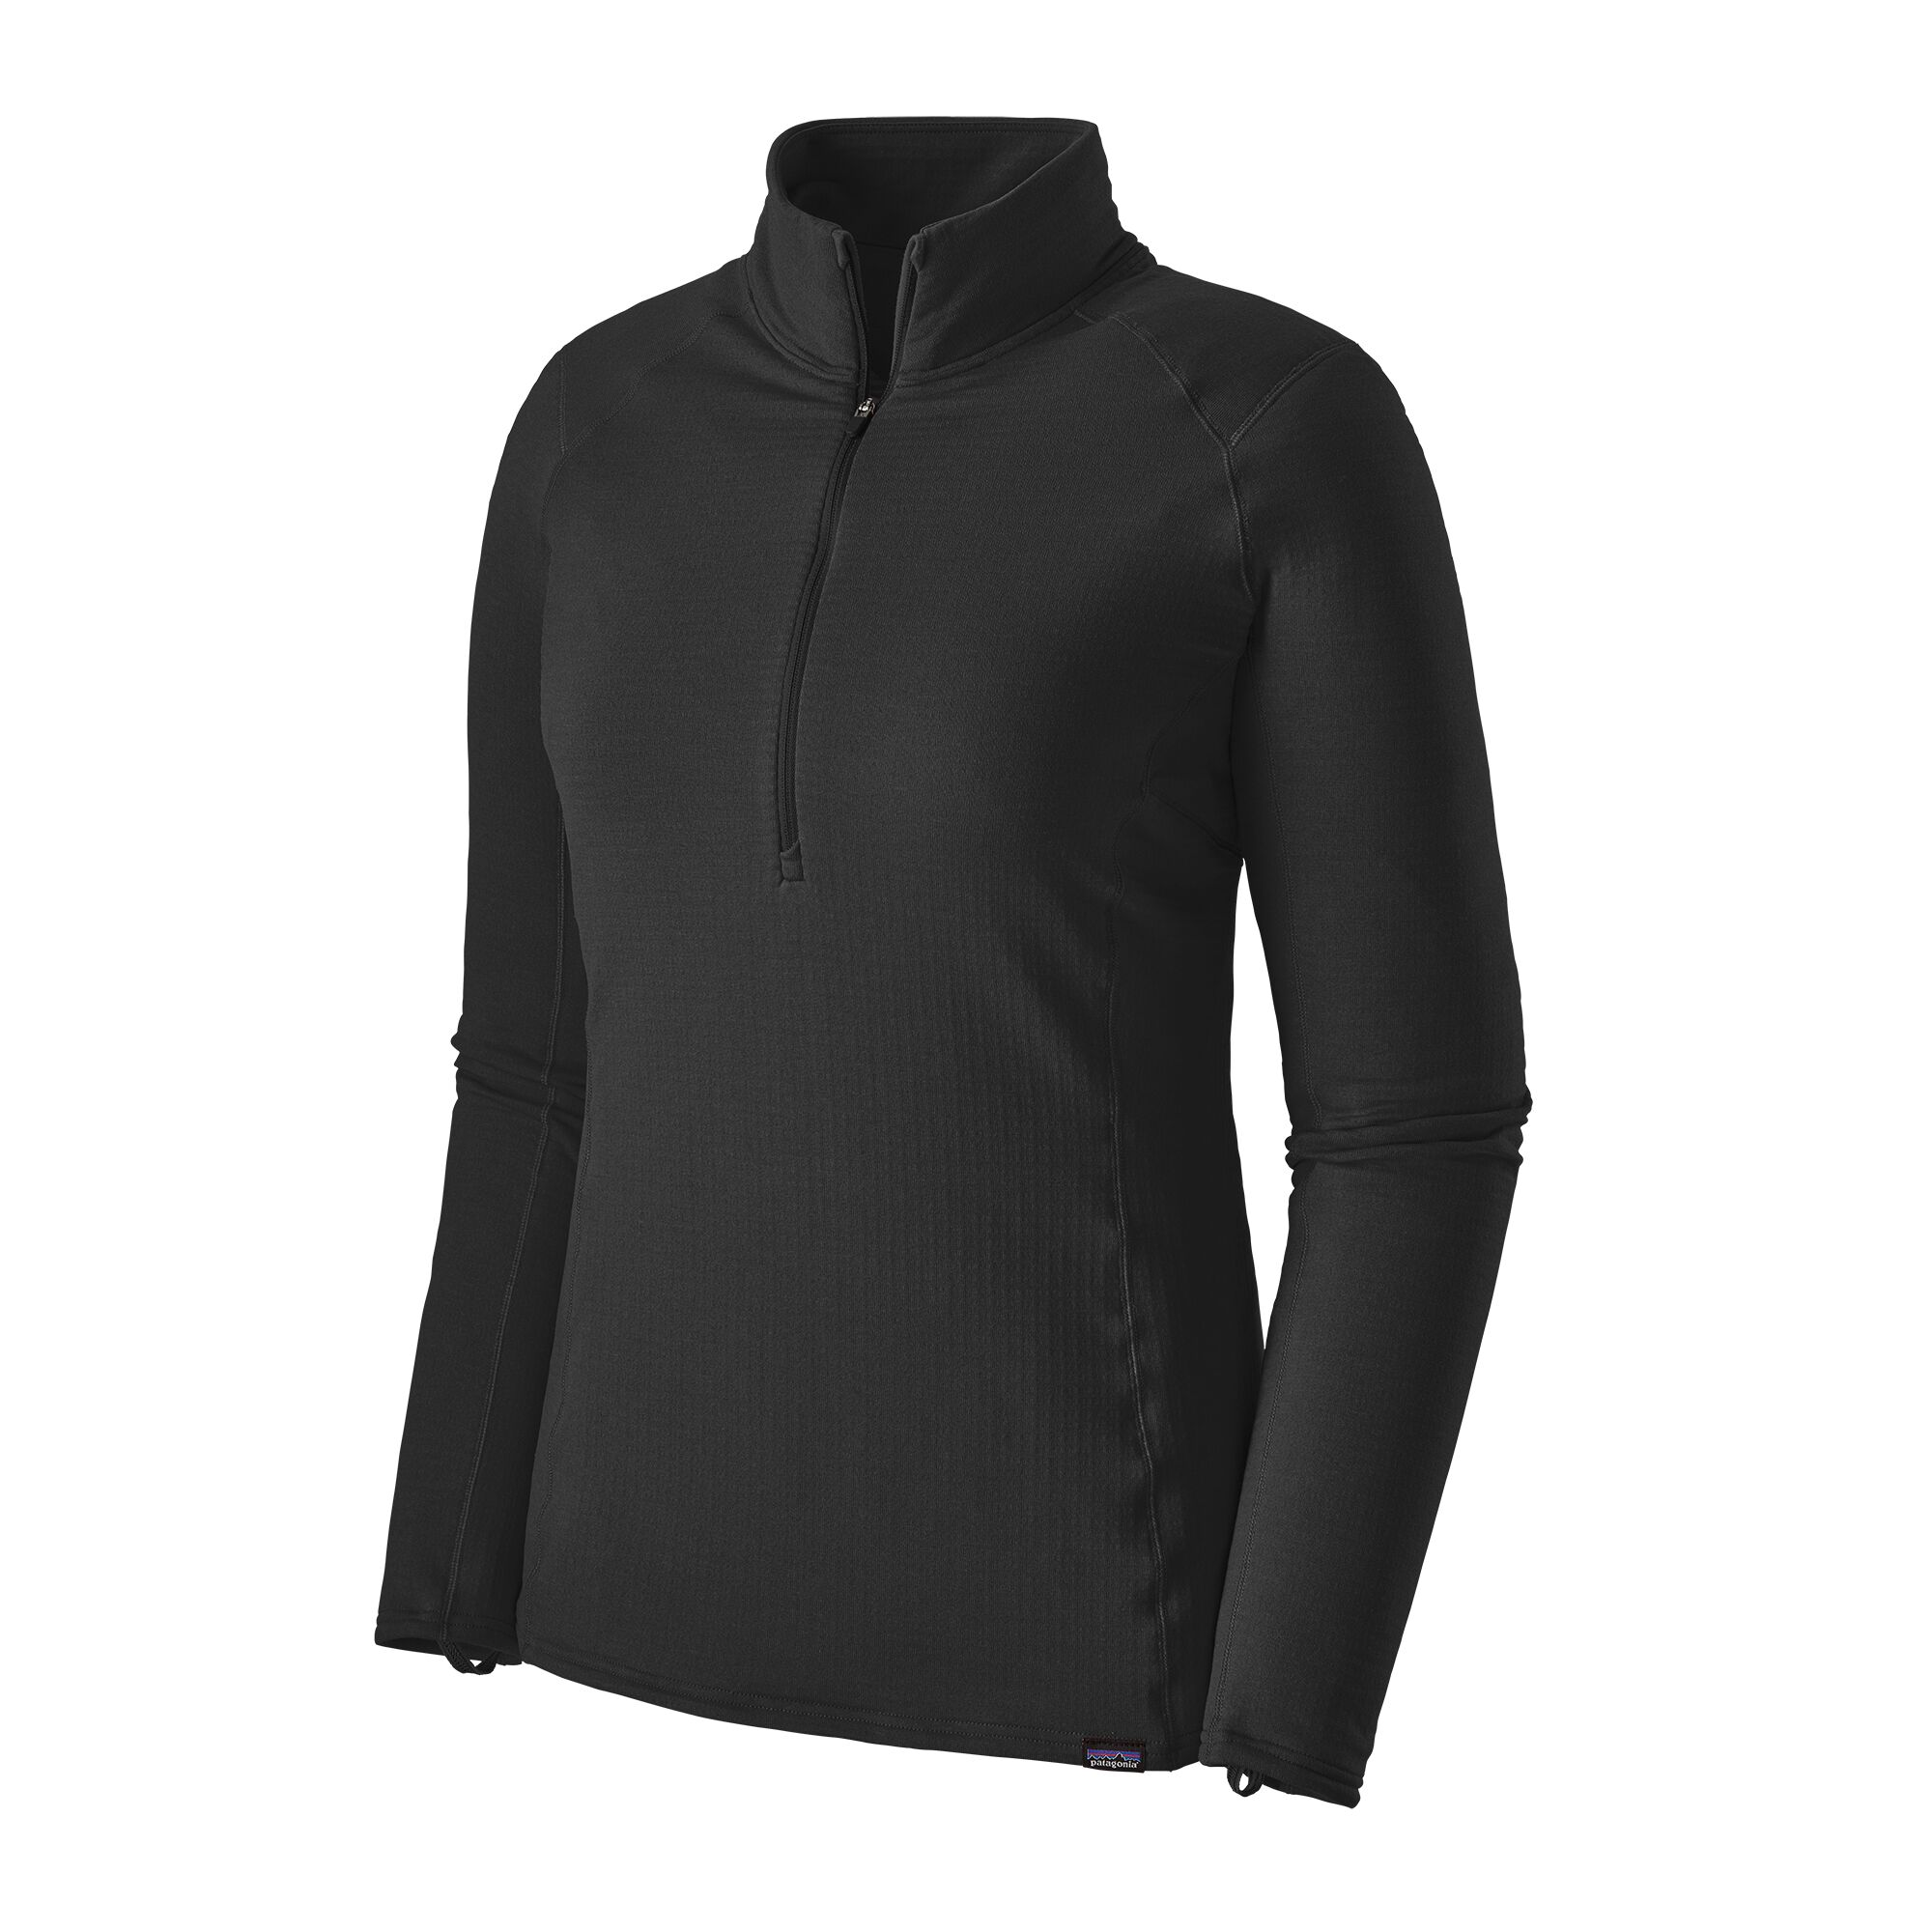 Patagonia Thermal Weight Zip Neck - Sous-vêtement femme